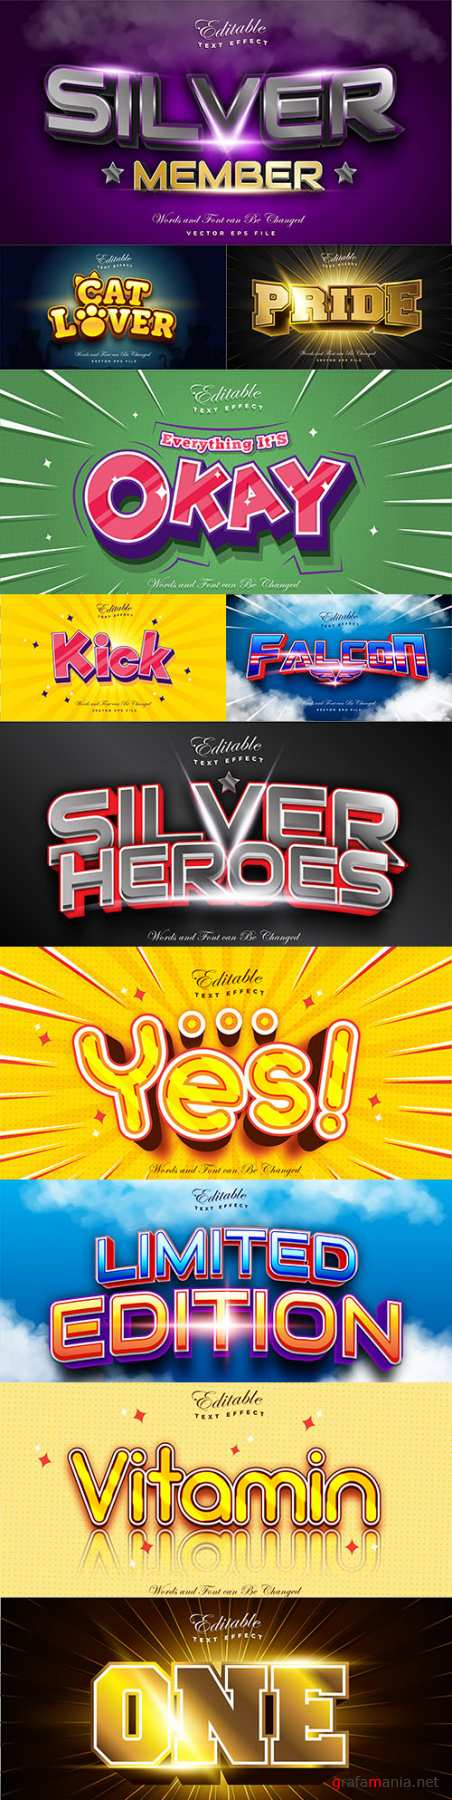 Editable font and 3d effect text design collection illustration 69